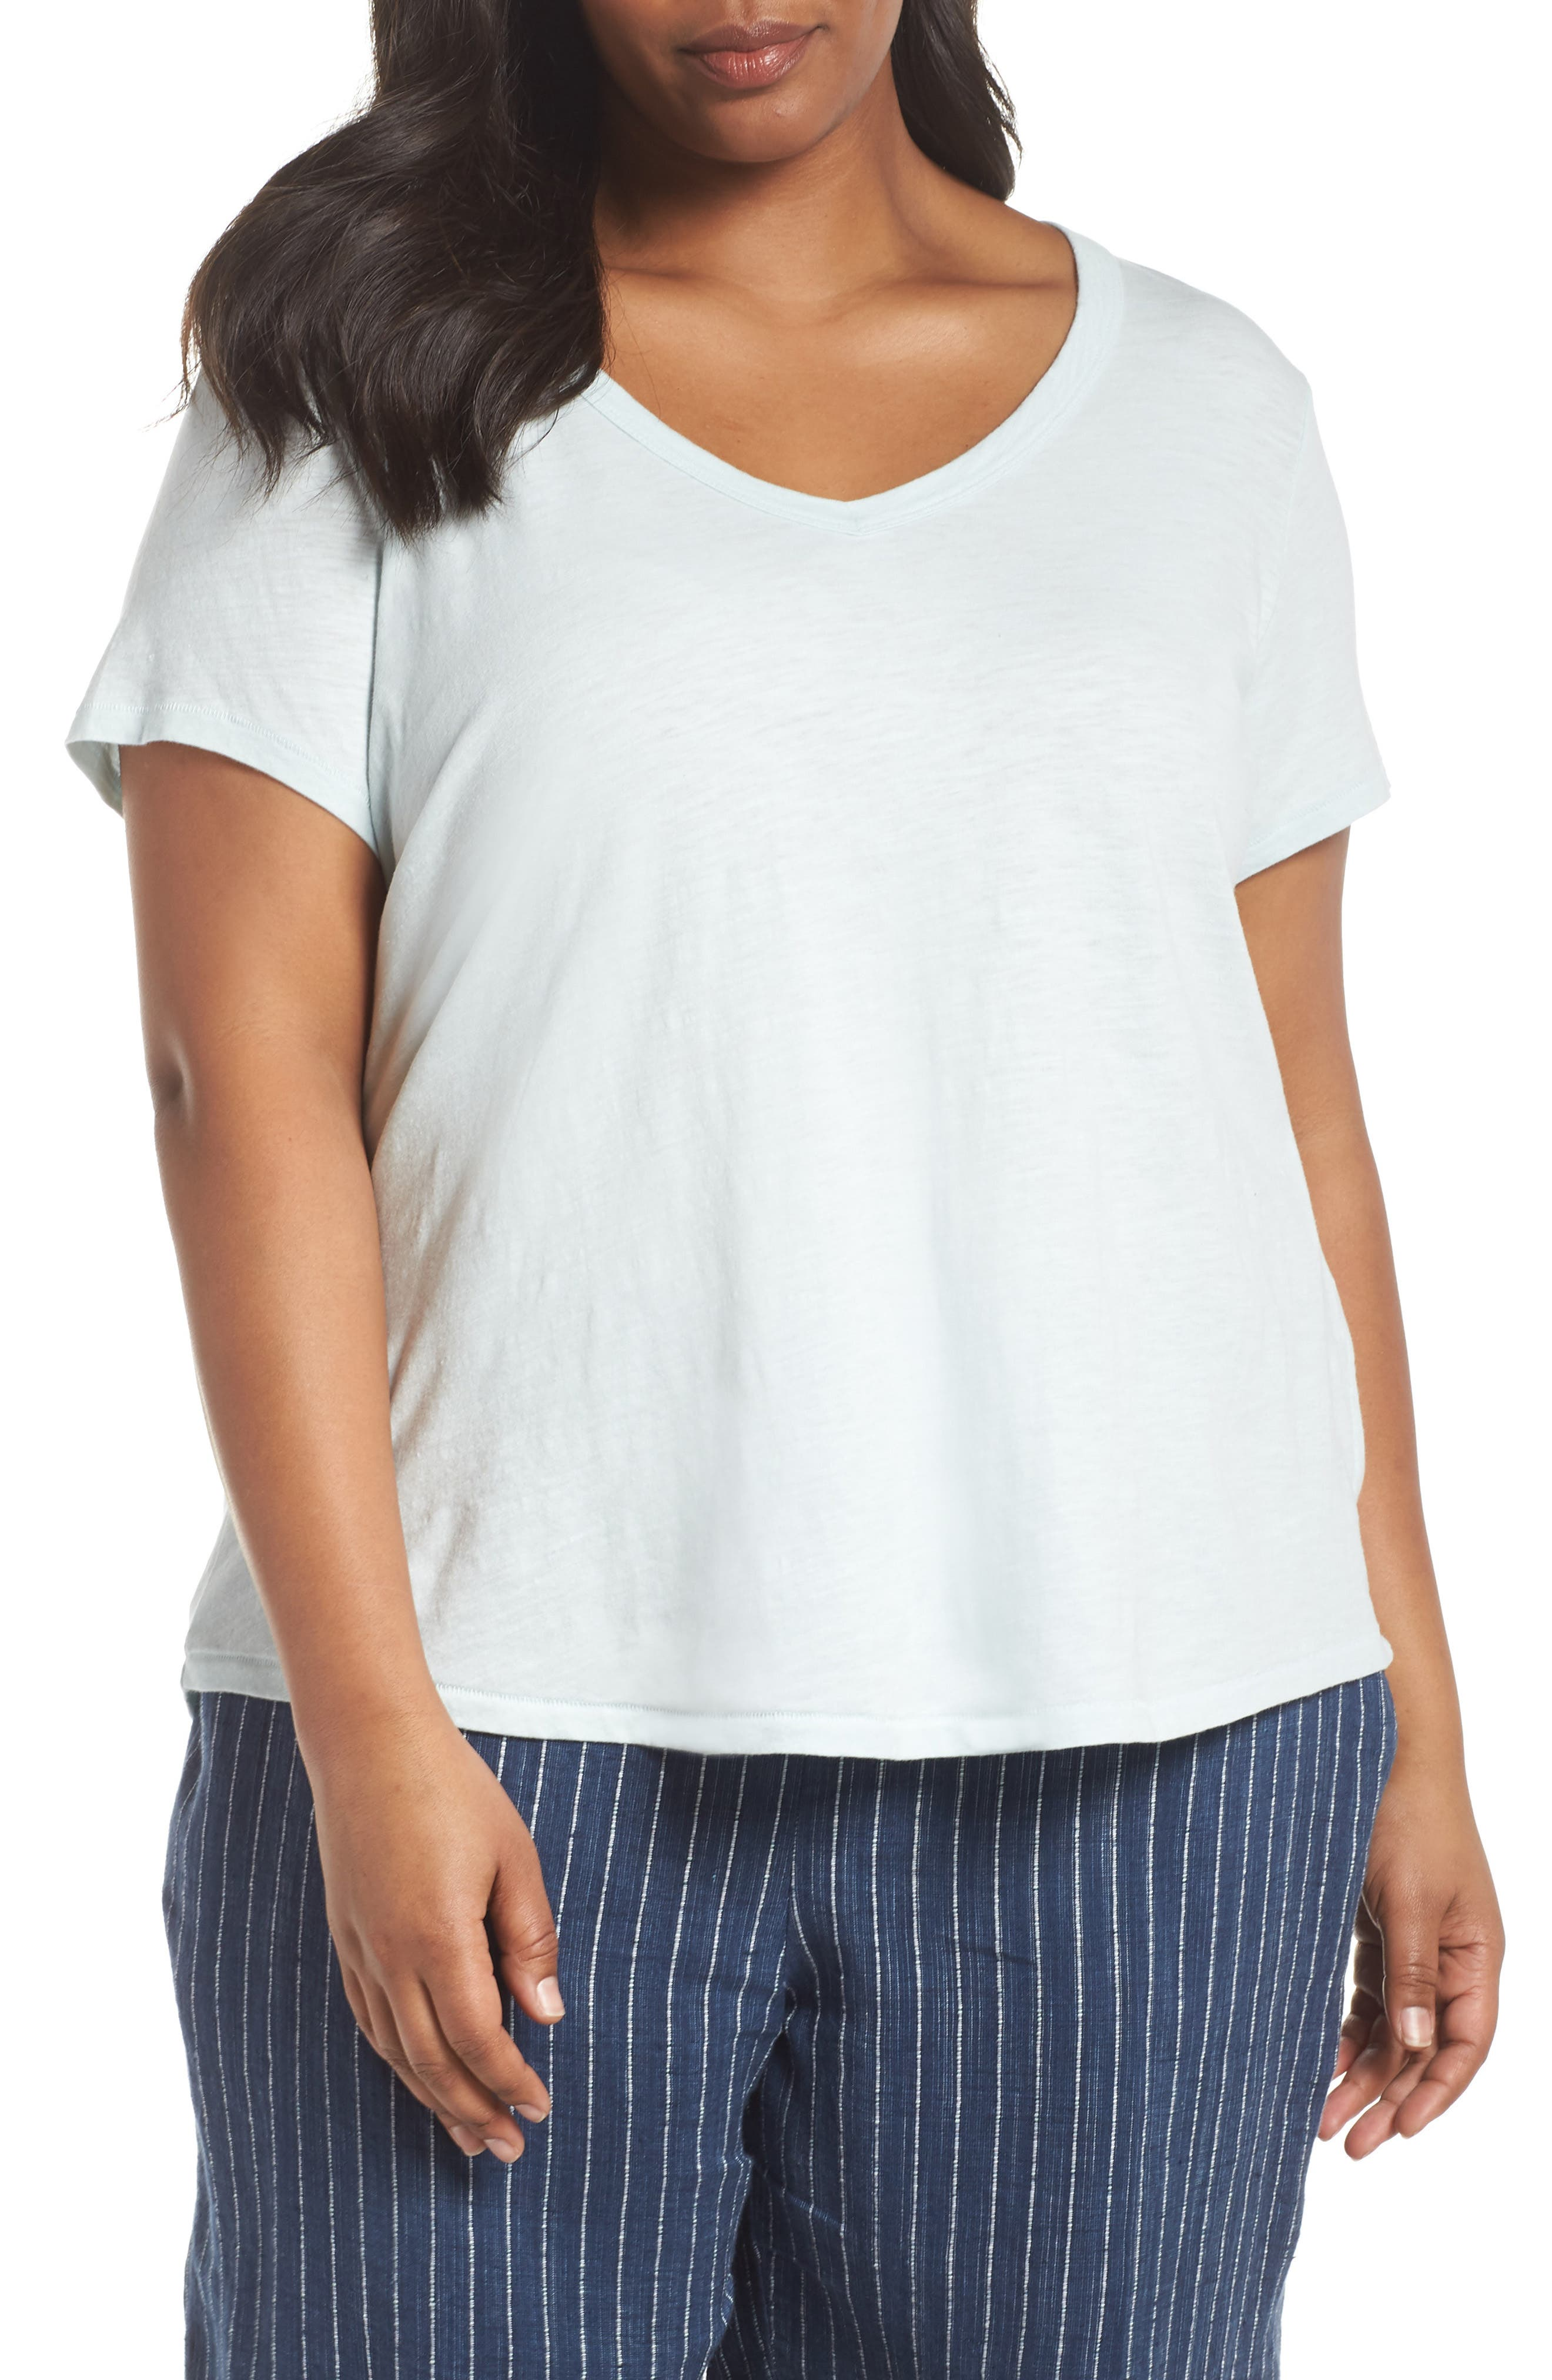 Alternate Image 1 Selected - Eileen Fisher V-Neck Organic Cotton Tee (Plus Size)